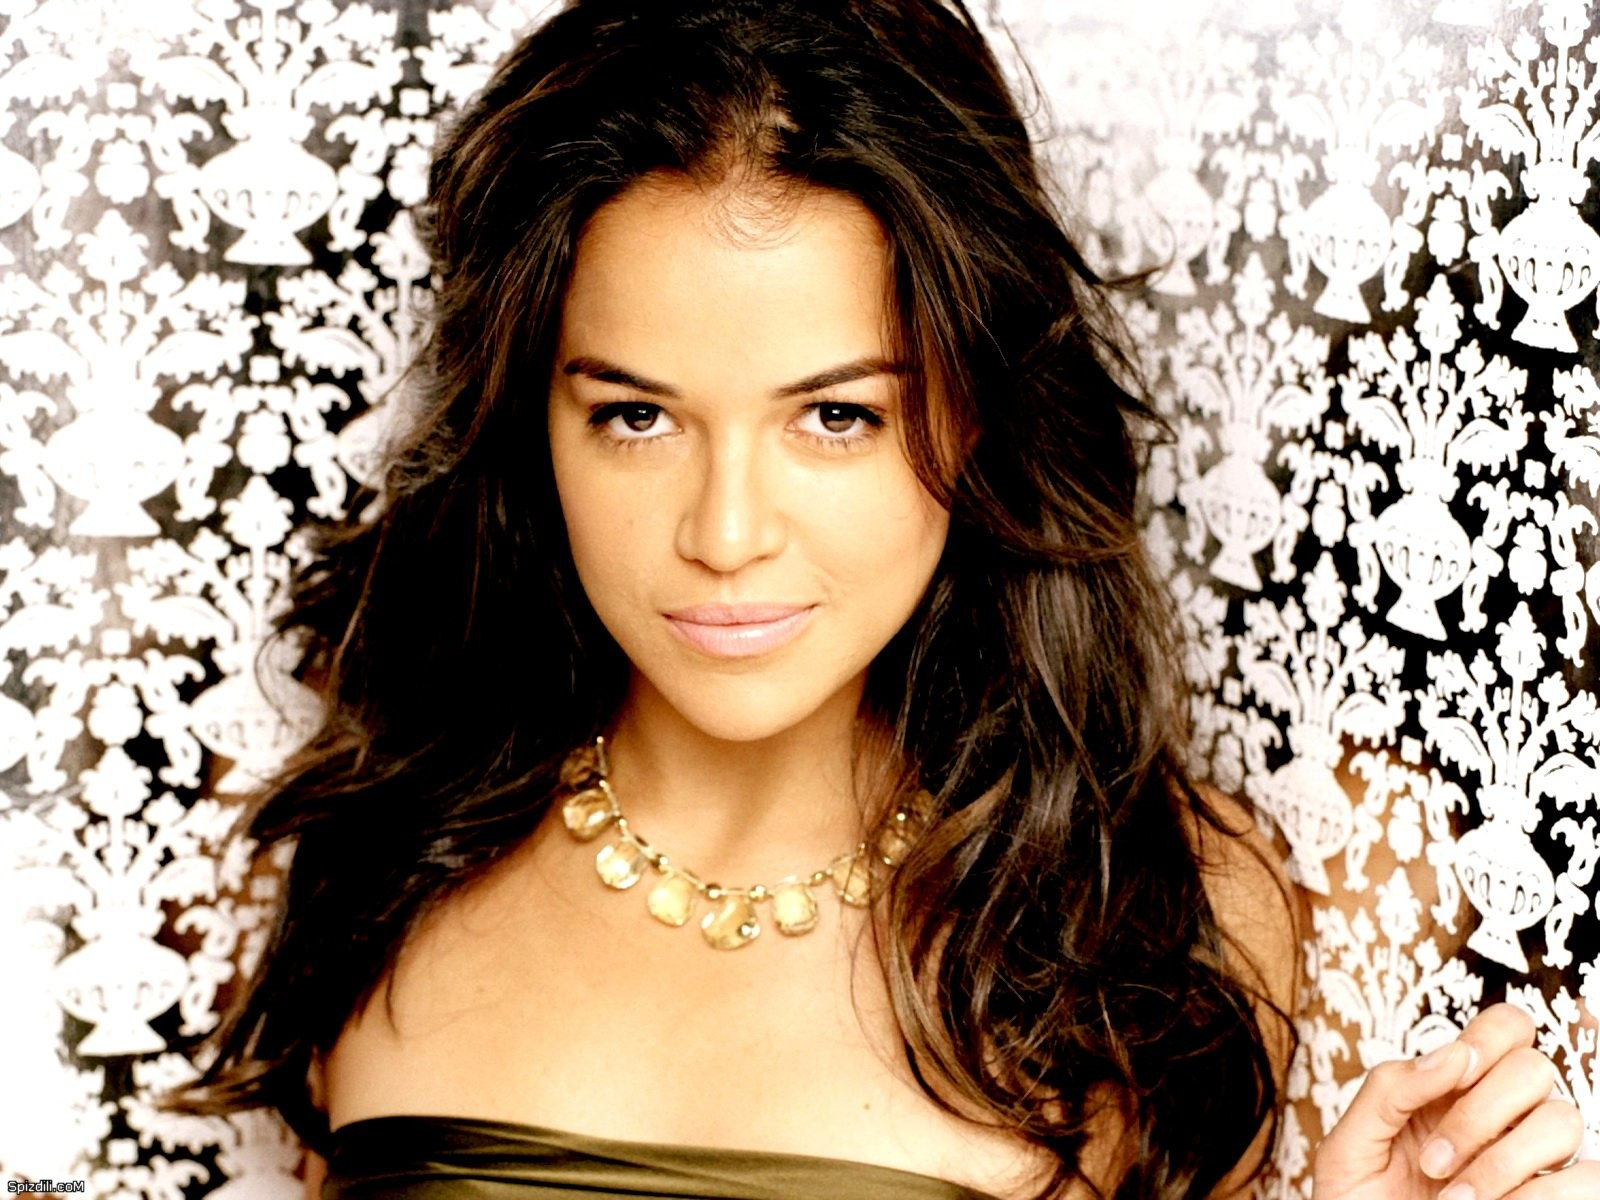 1600x1200 - Michelle Rodriguez Wallpapers 20